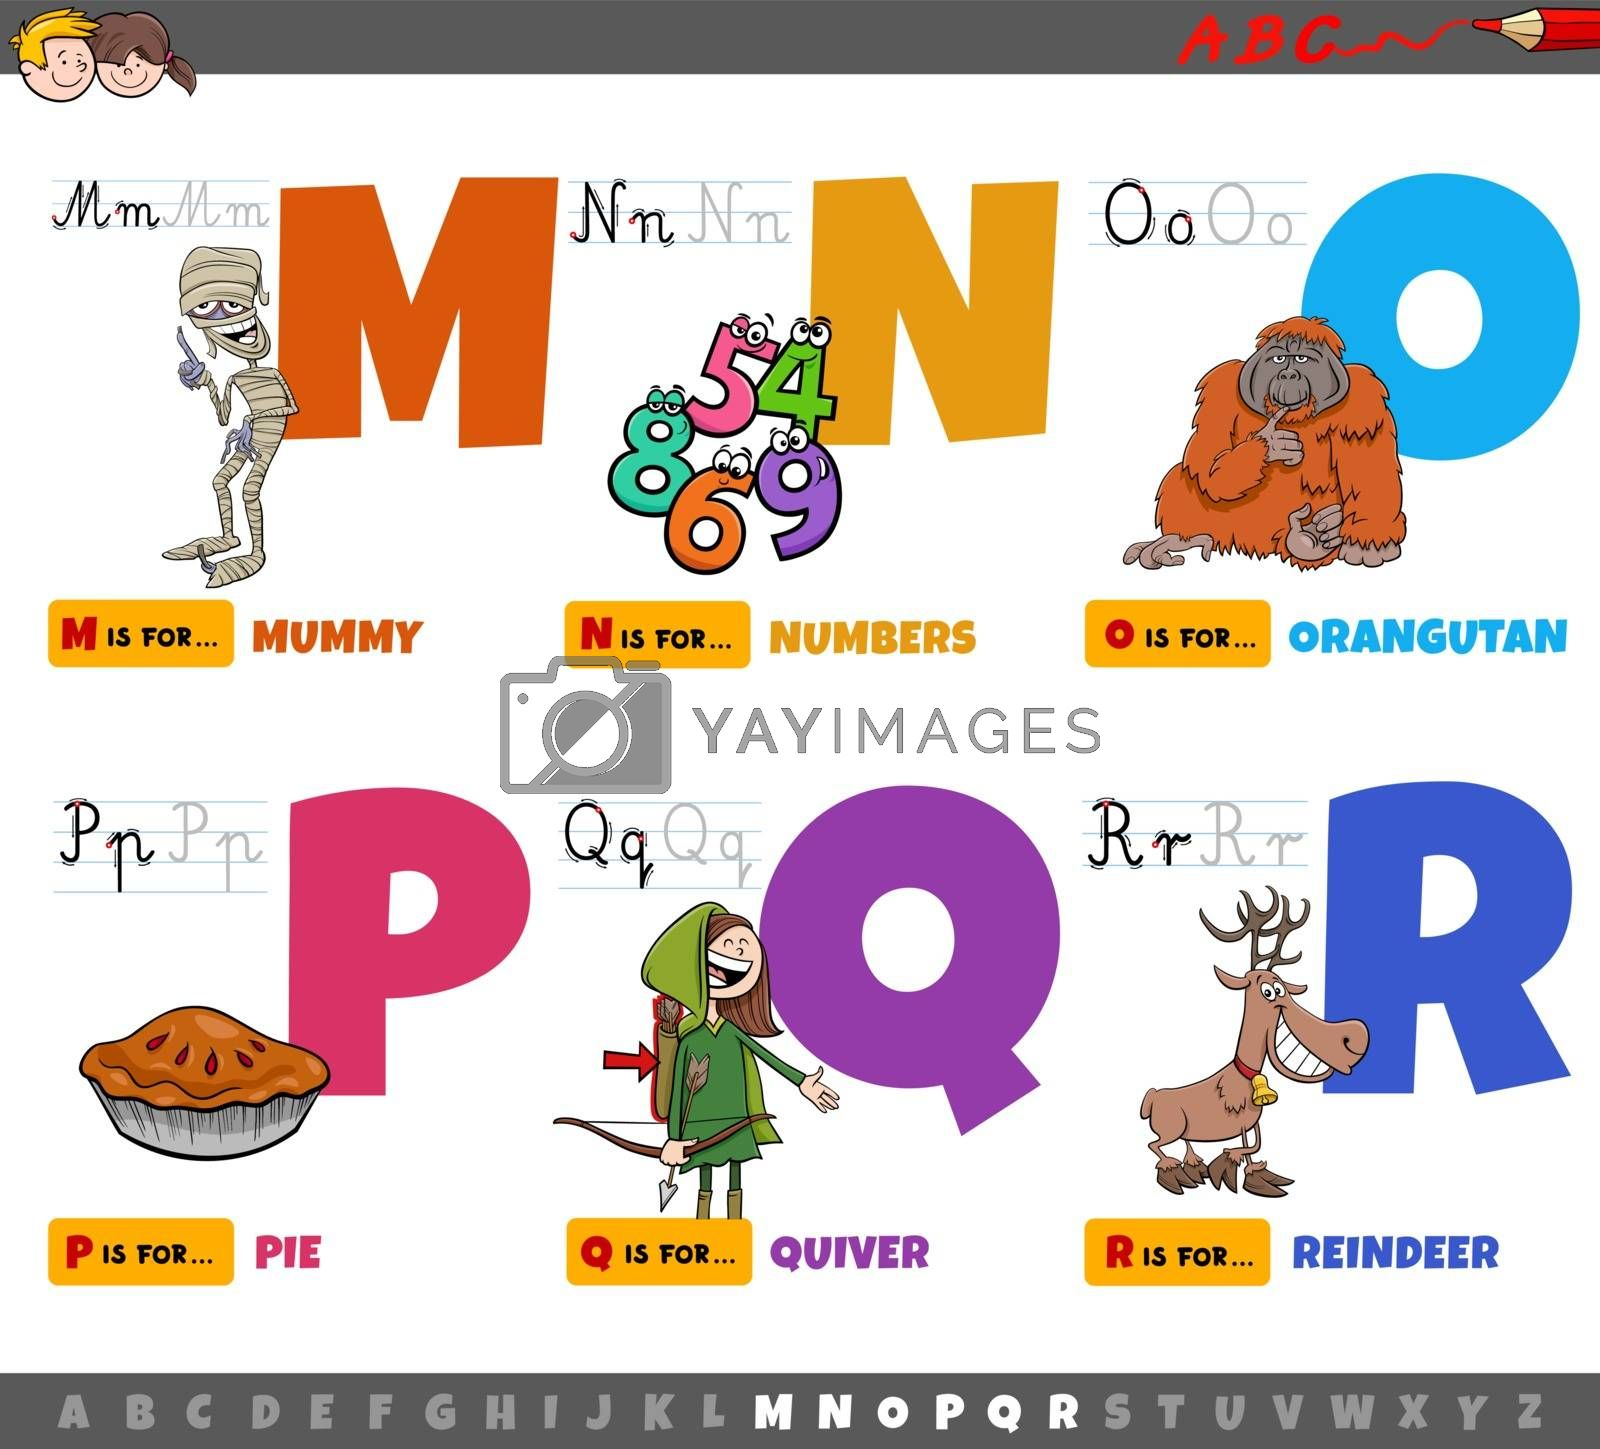 Cartoon illustration of capital letters from alphabet educational set for reading and writing practise for children from M to R